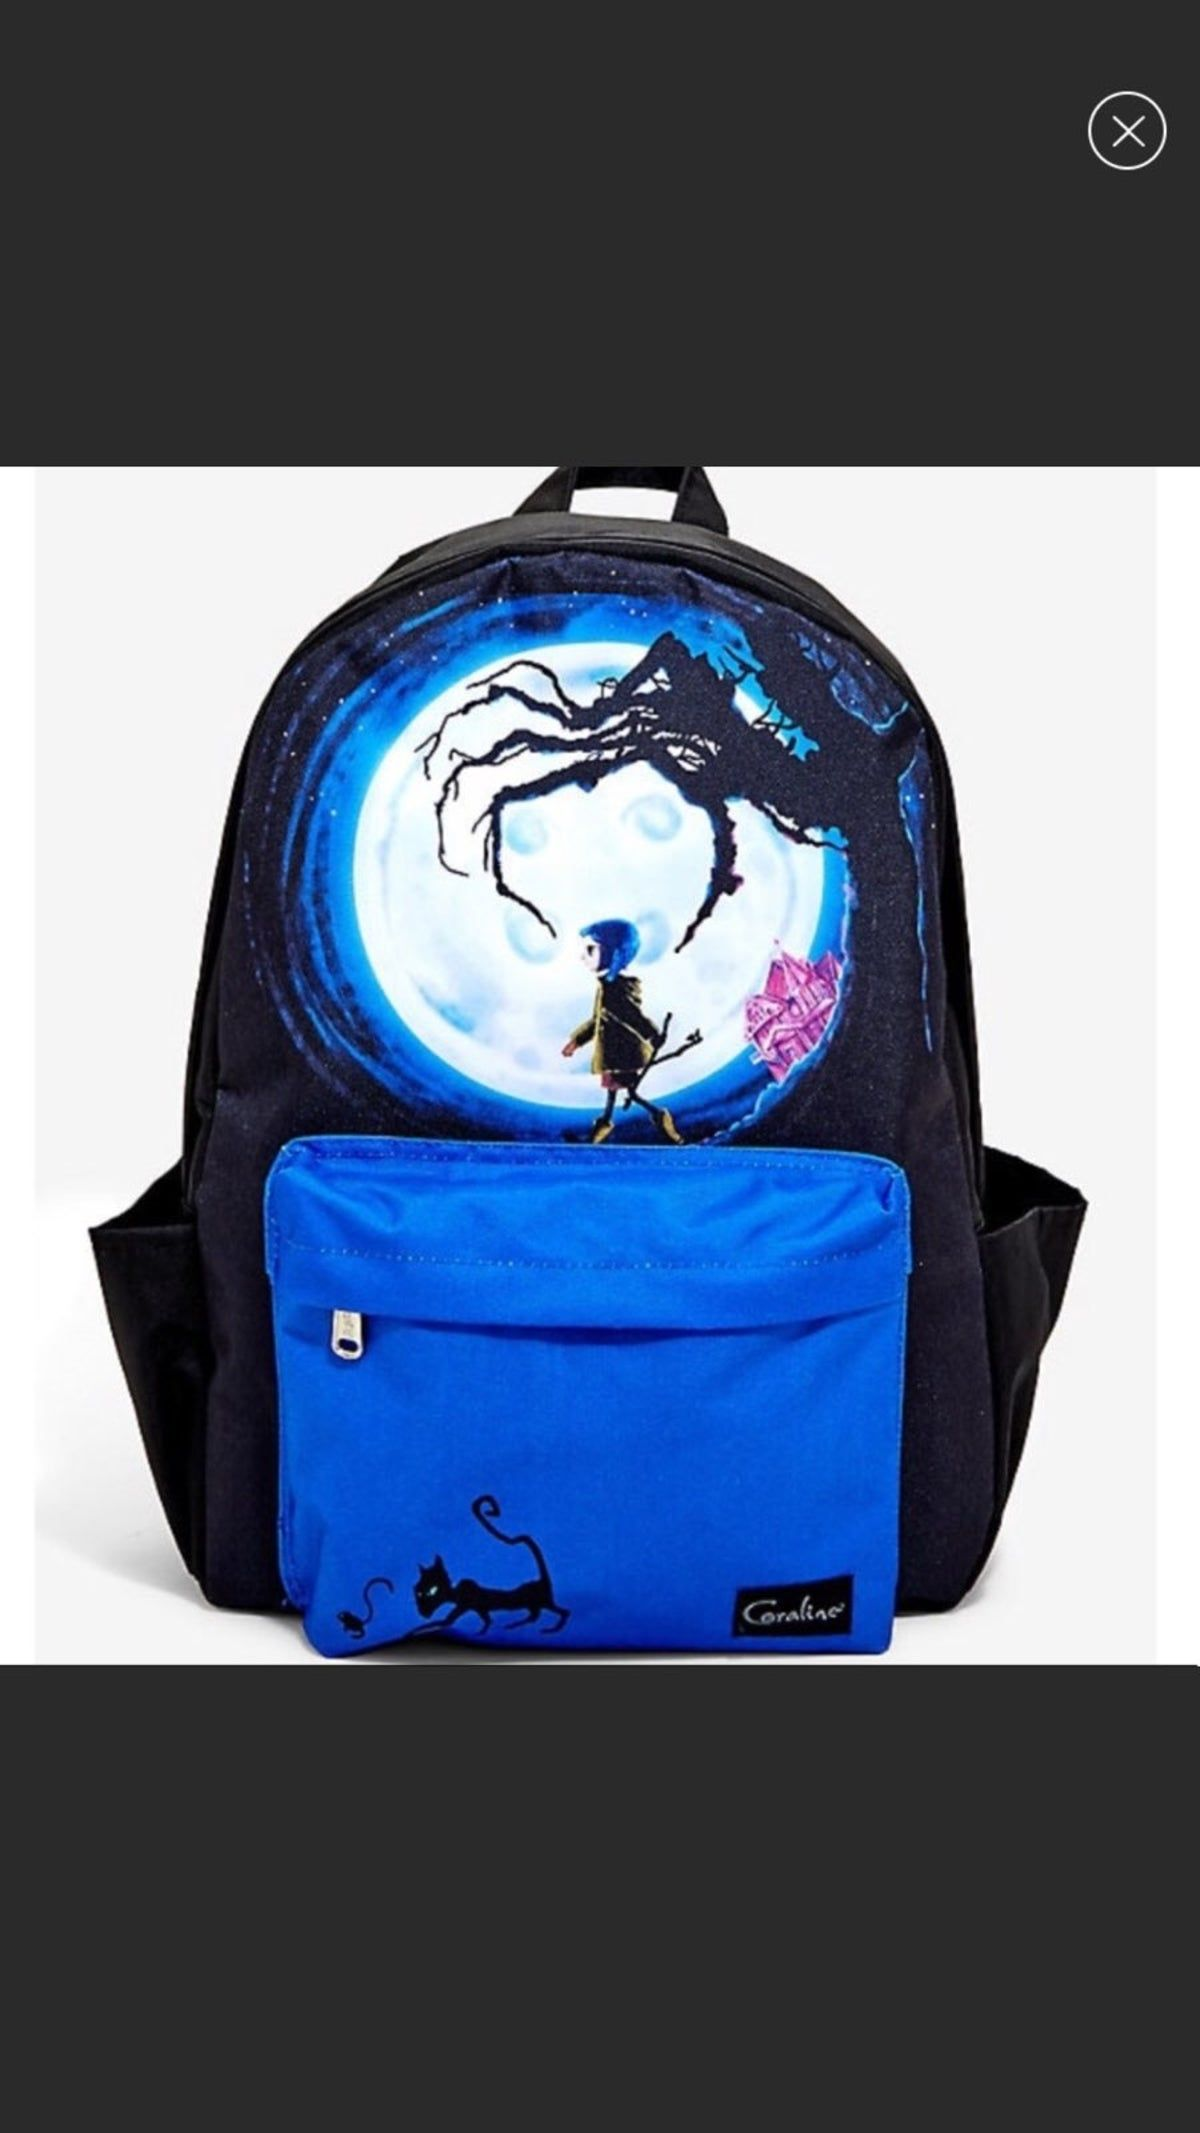 Loungefly Coraline Backpack In 2020 Coraline Coraline Doll Backpacks